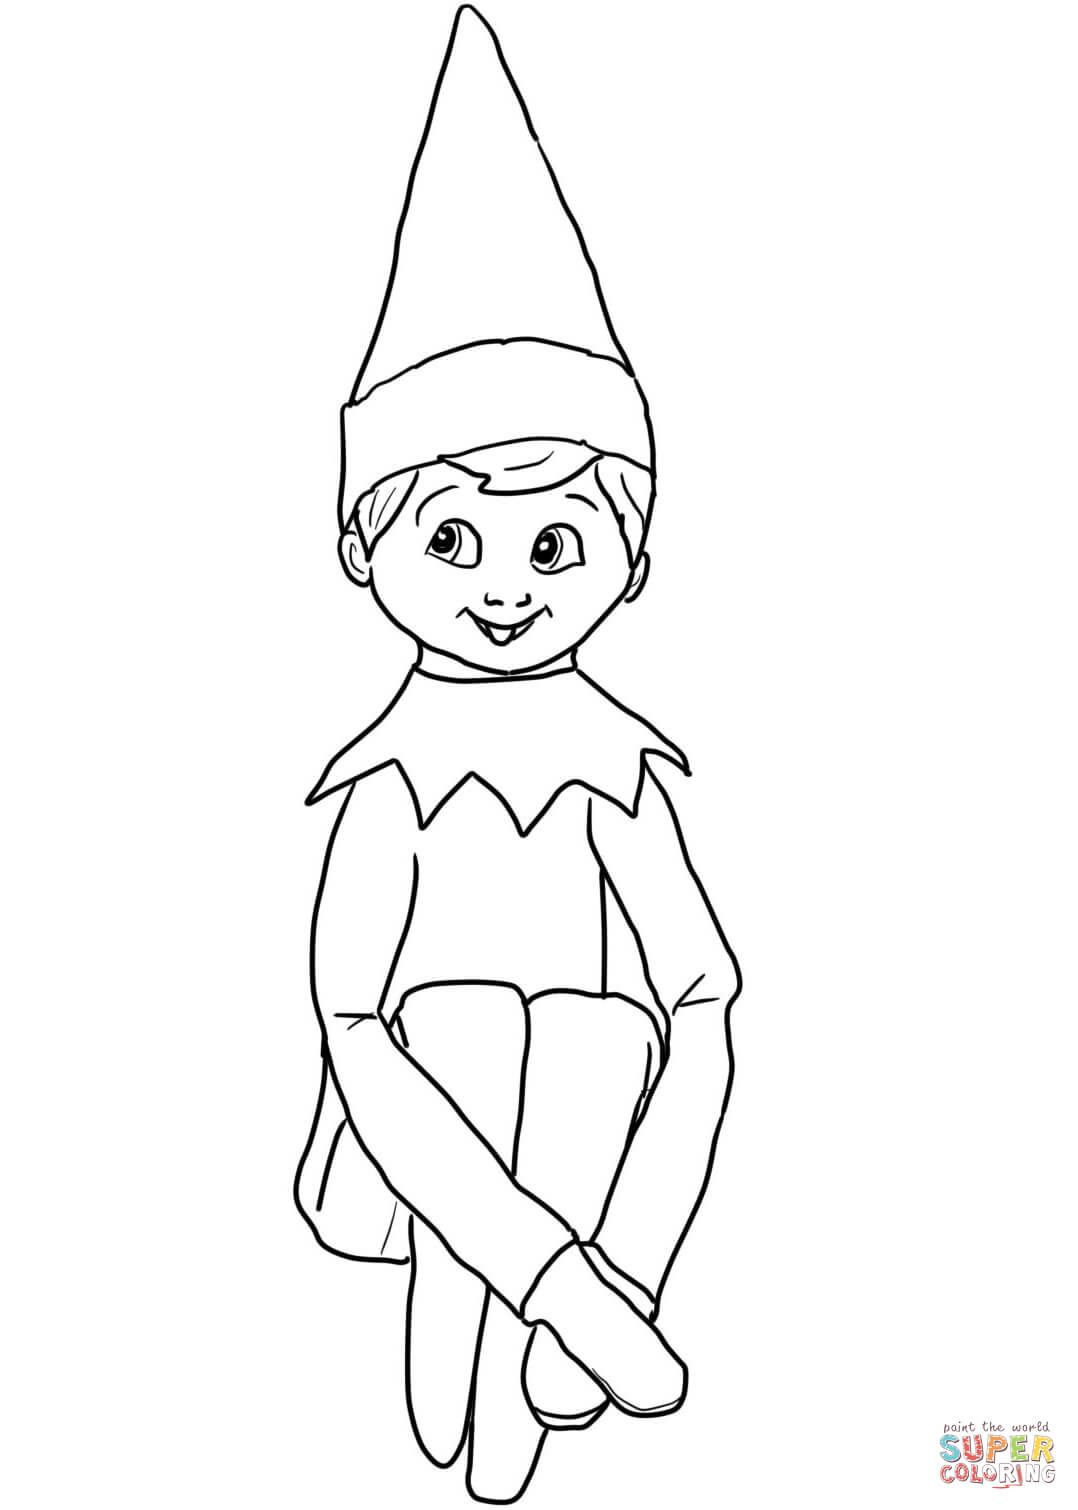 Christmas Elf Coloring Pages Printable With On Shelf Page Free